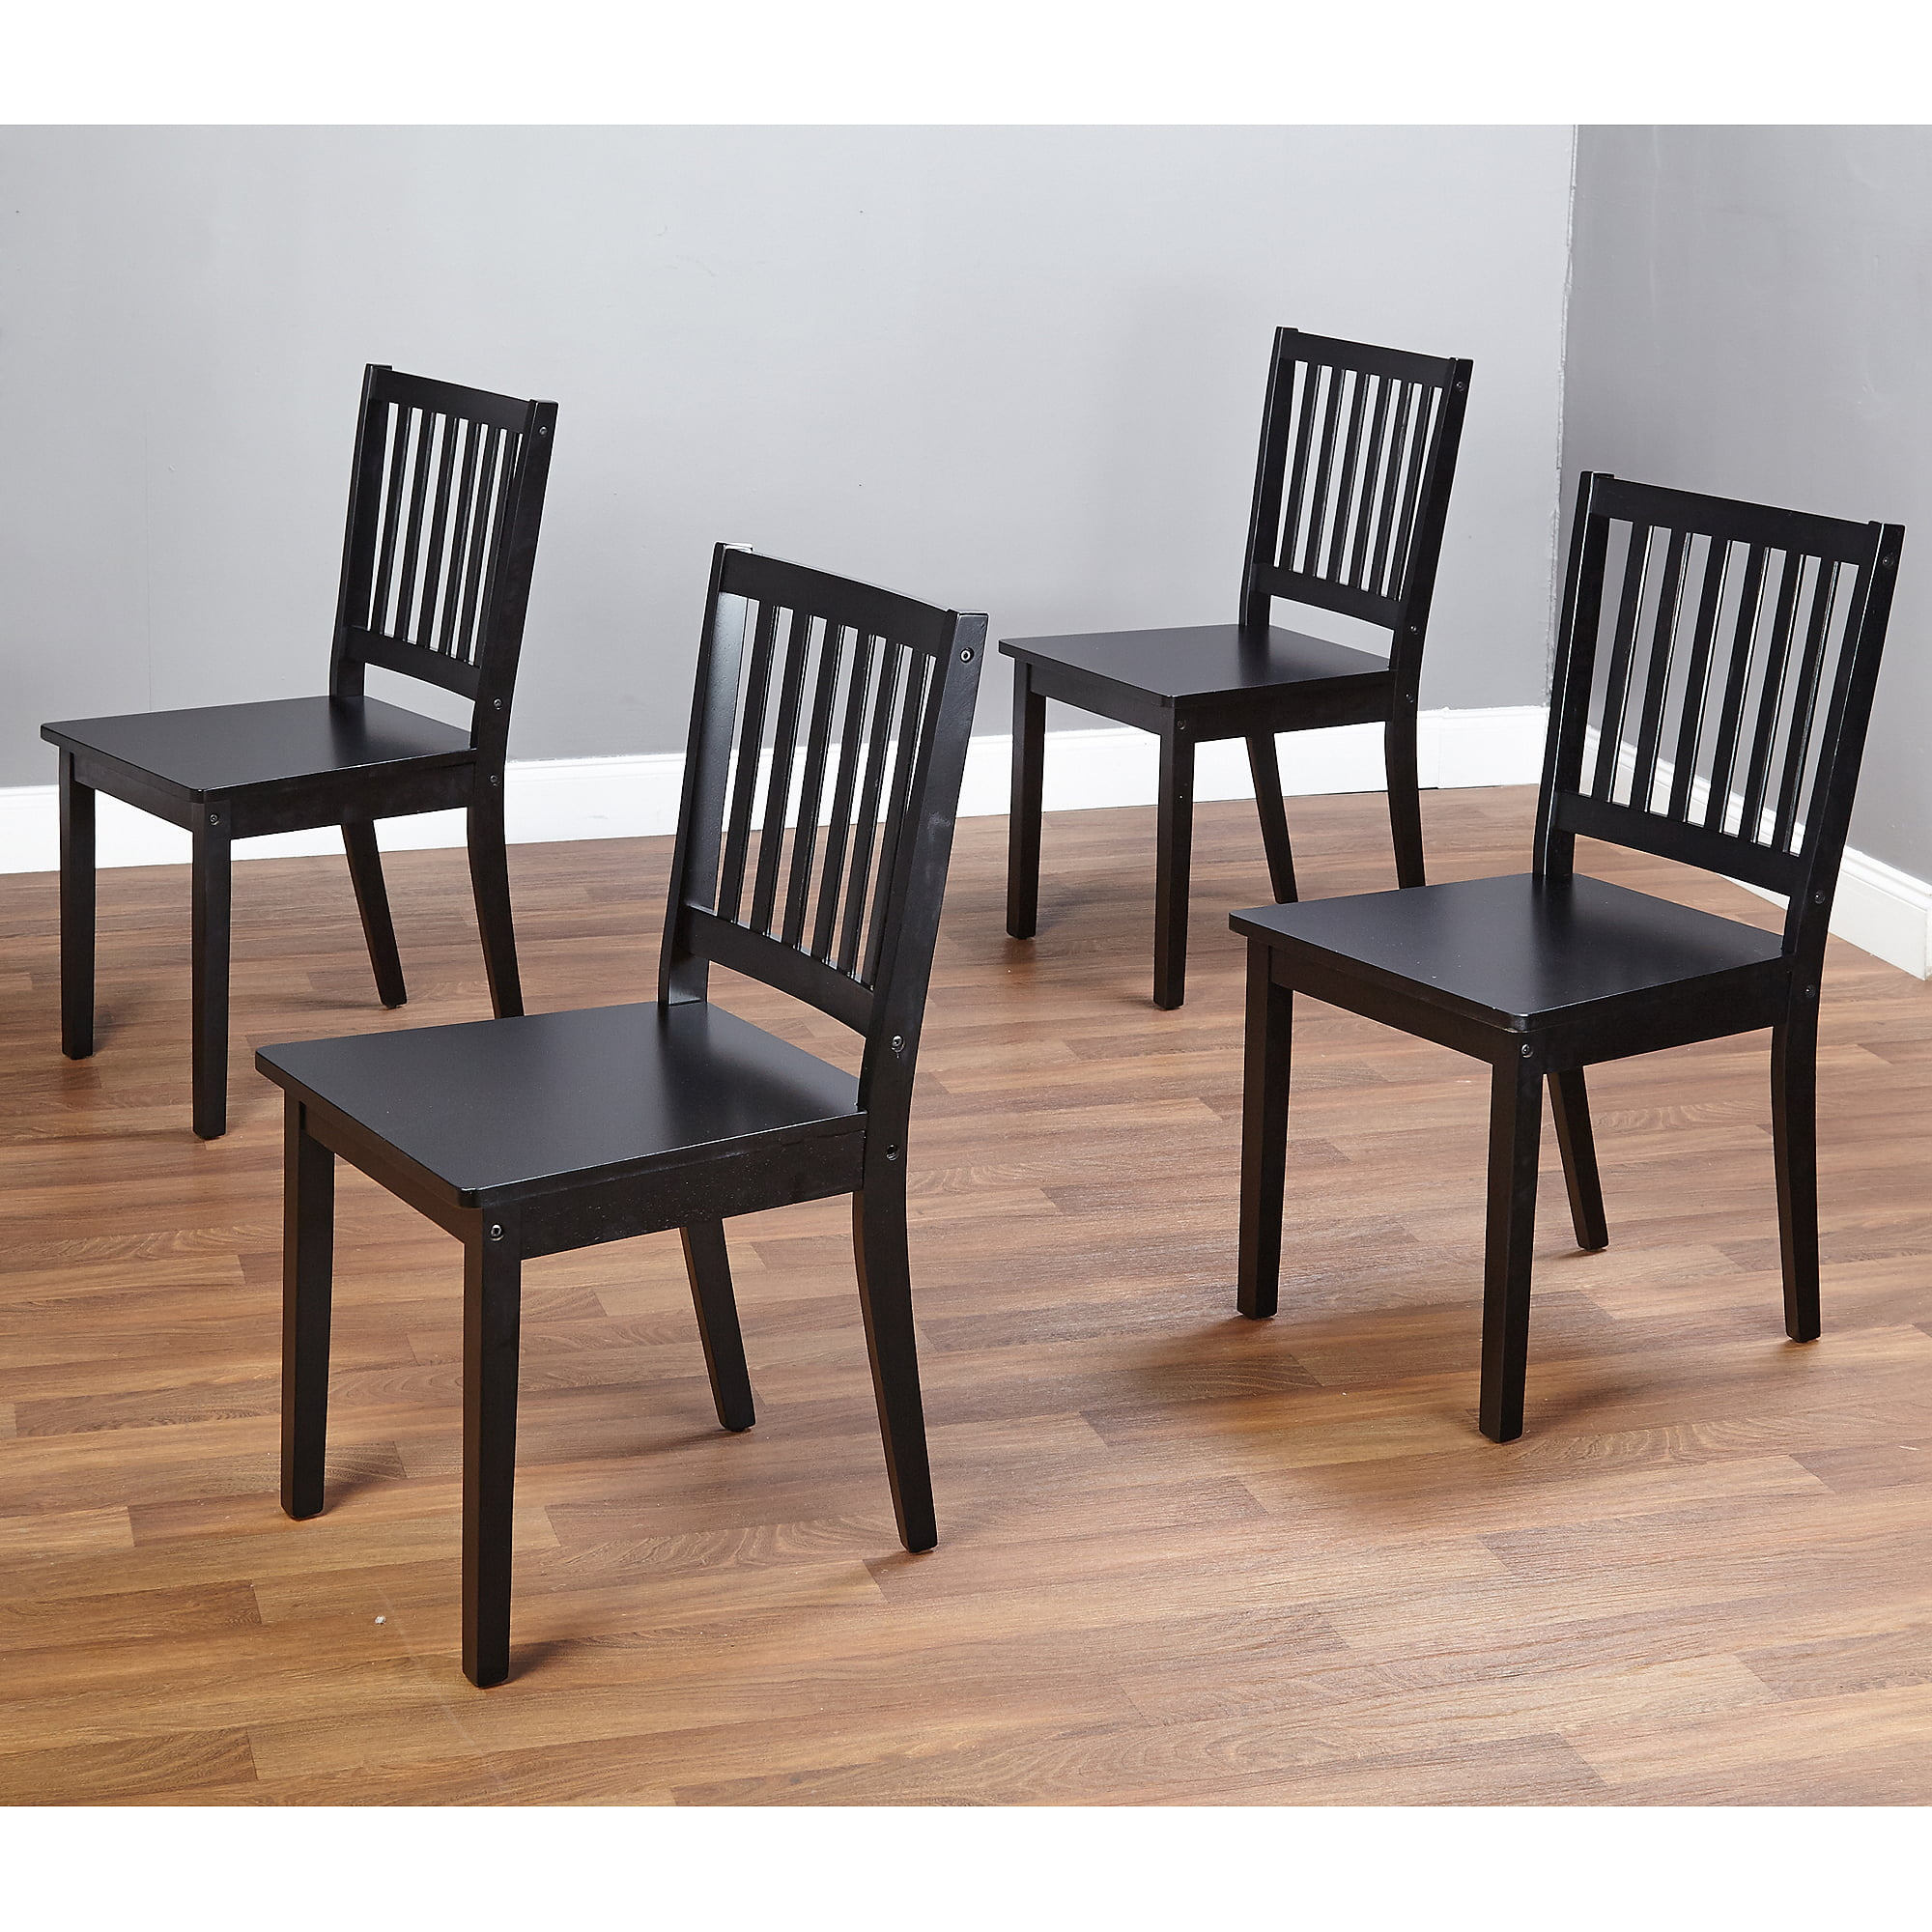 Dining Wood Chair Set of 4 Black Kitchen Dinette Room Solid Seat ...